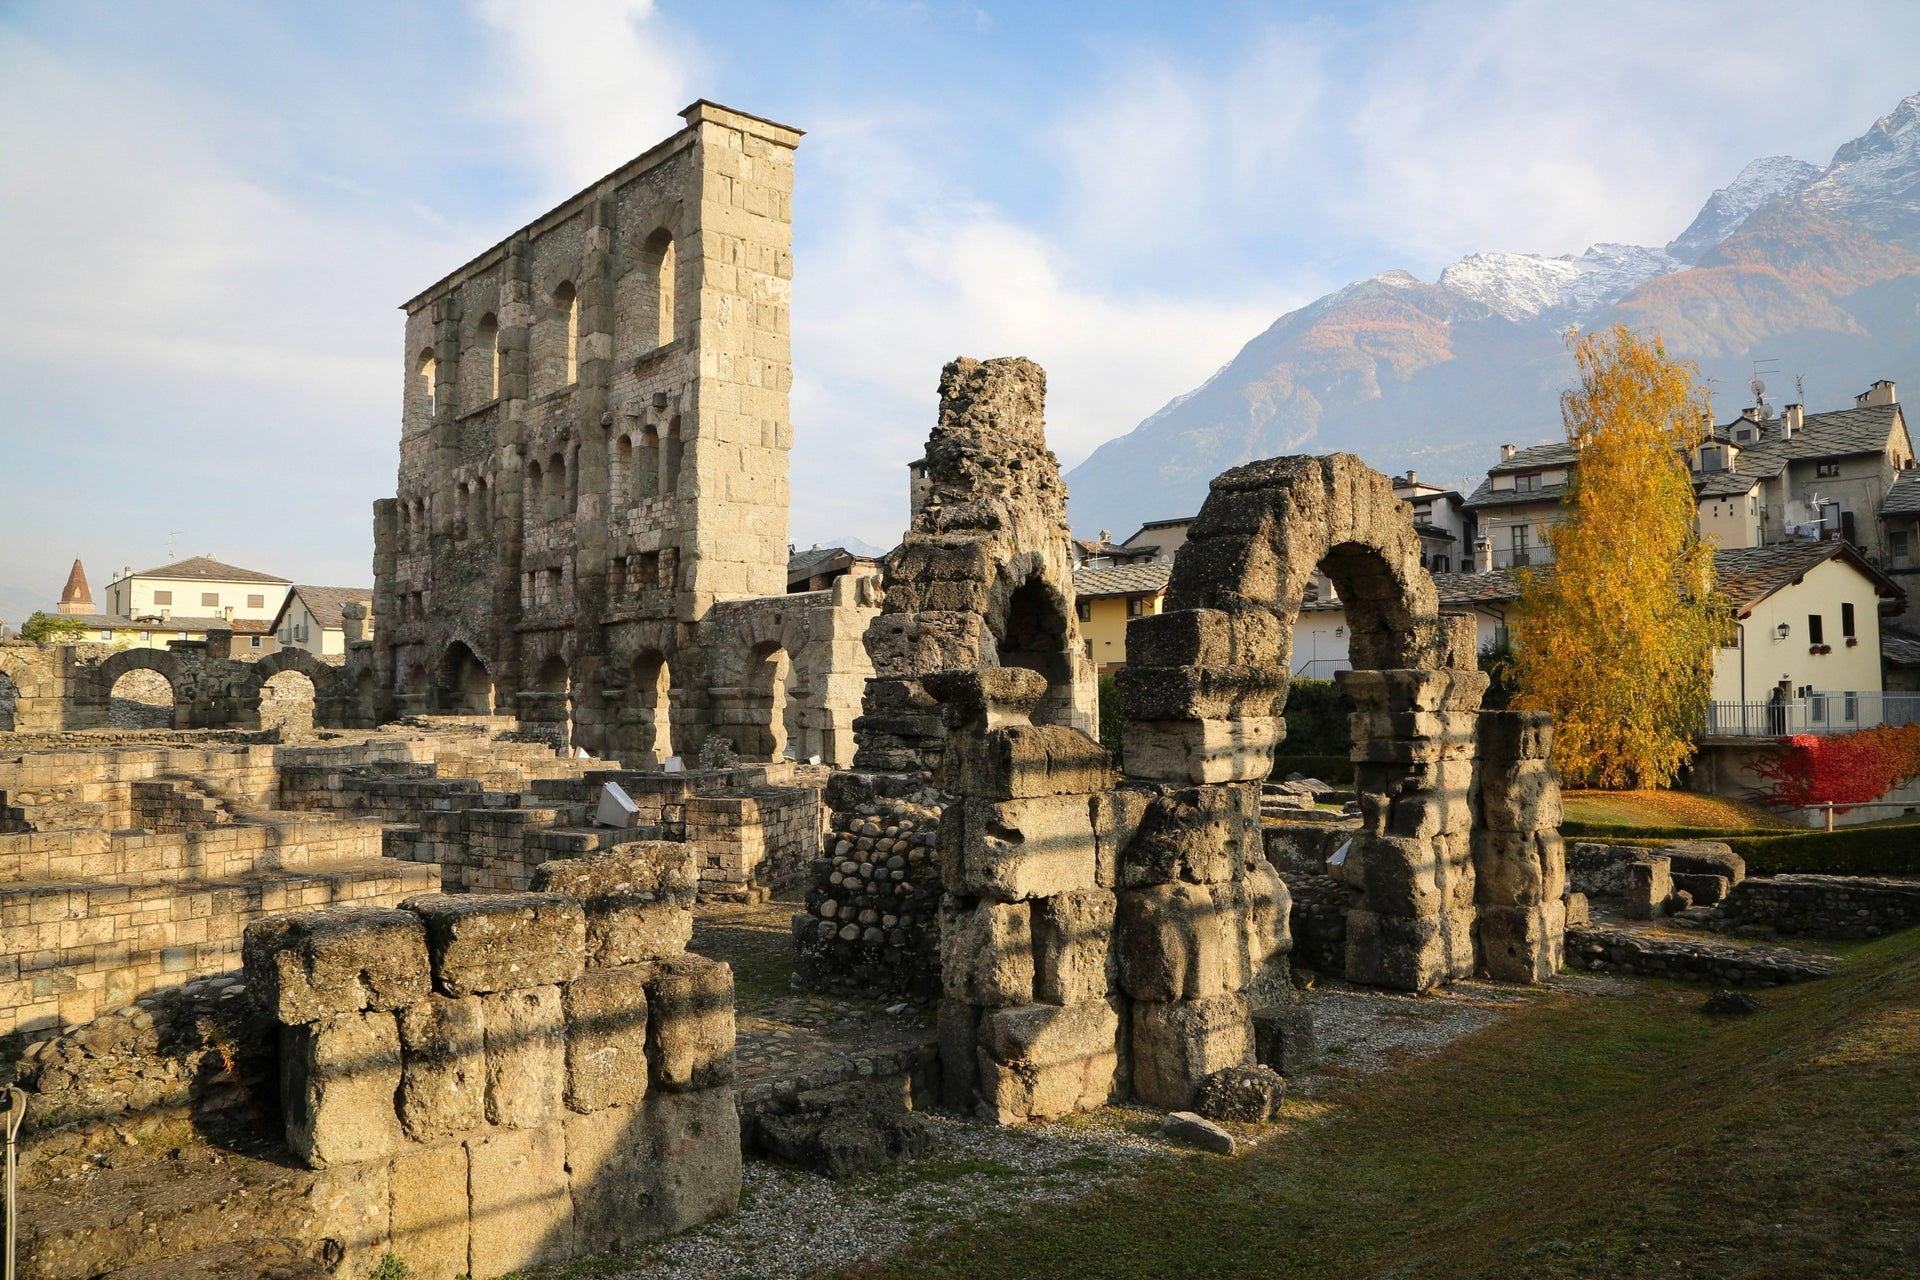 Ancient roman ruins in the city of Aosta